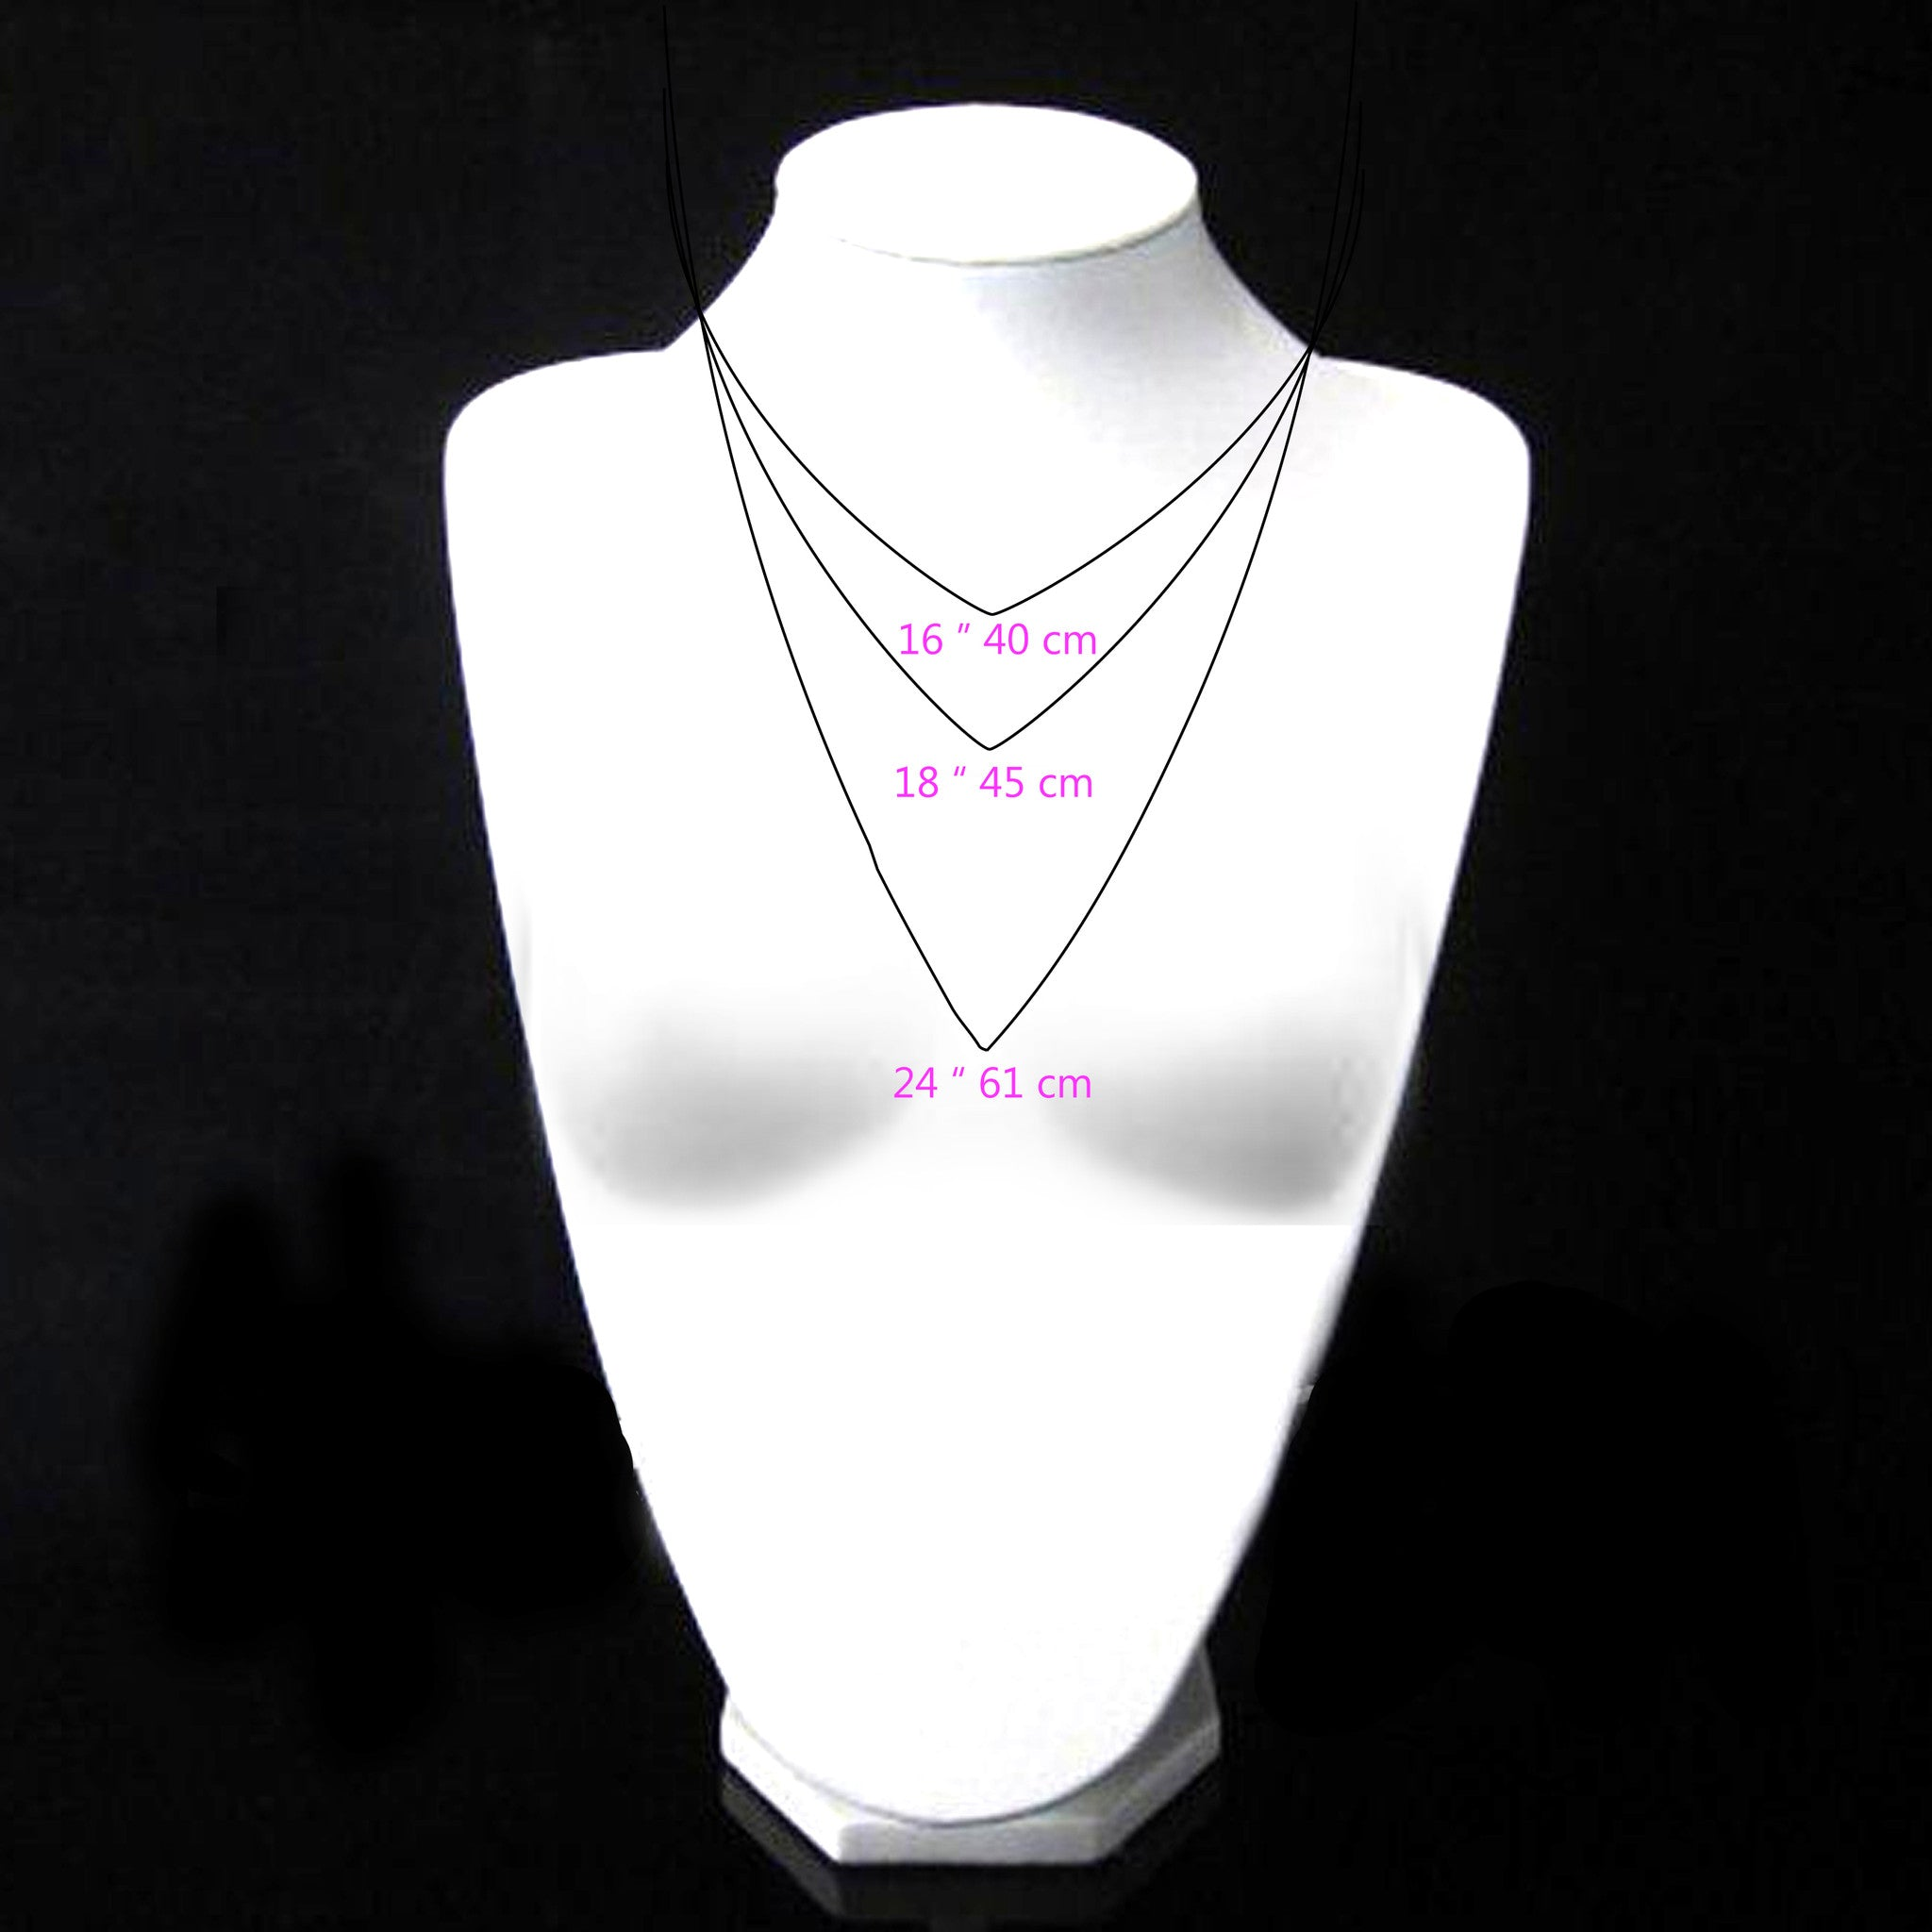 Necklaces - Small Delicate Tube & Helen Chain Necklace